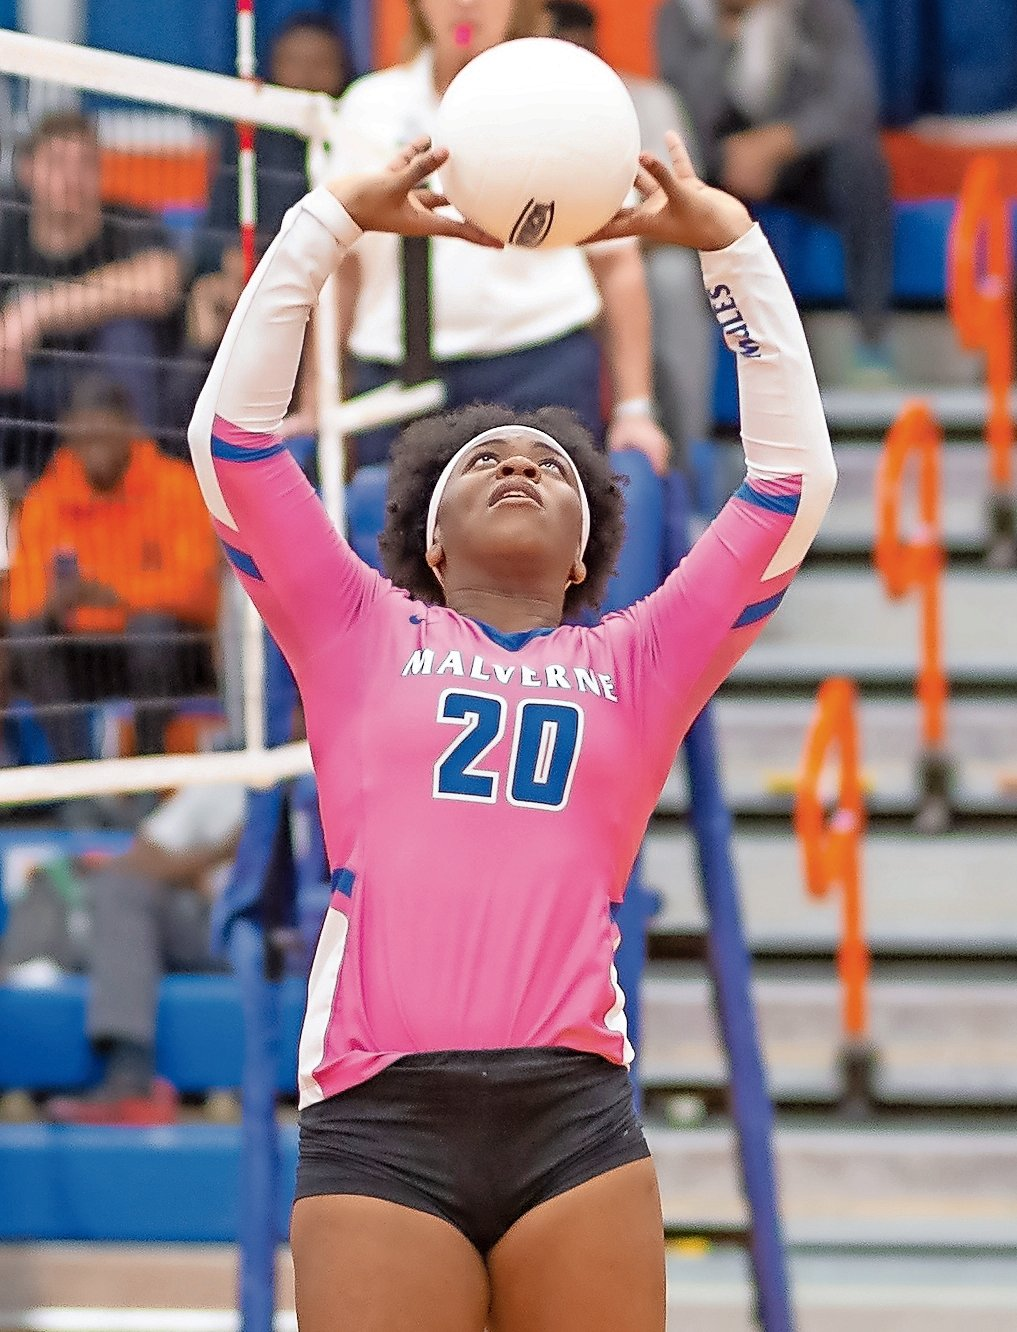 Malverne High School's Lady Mules volleyball team will have to wait until 2021 to defend their conference title.